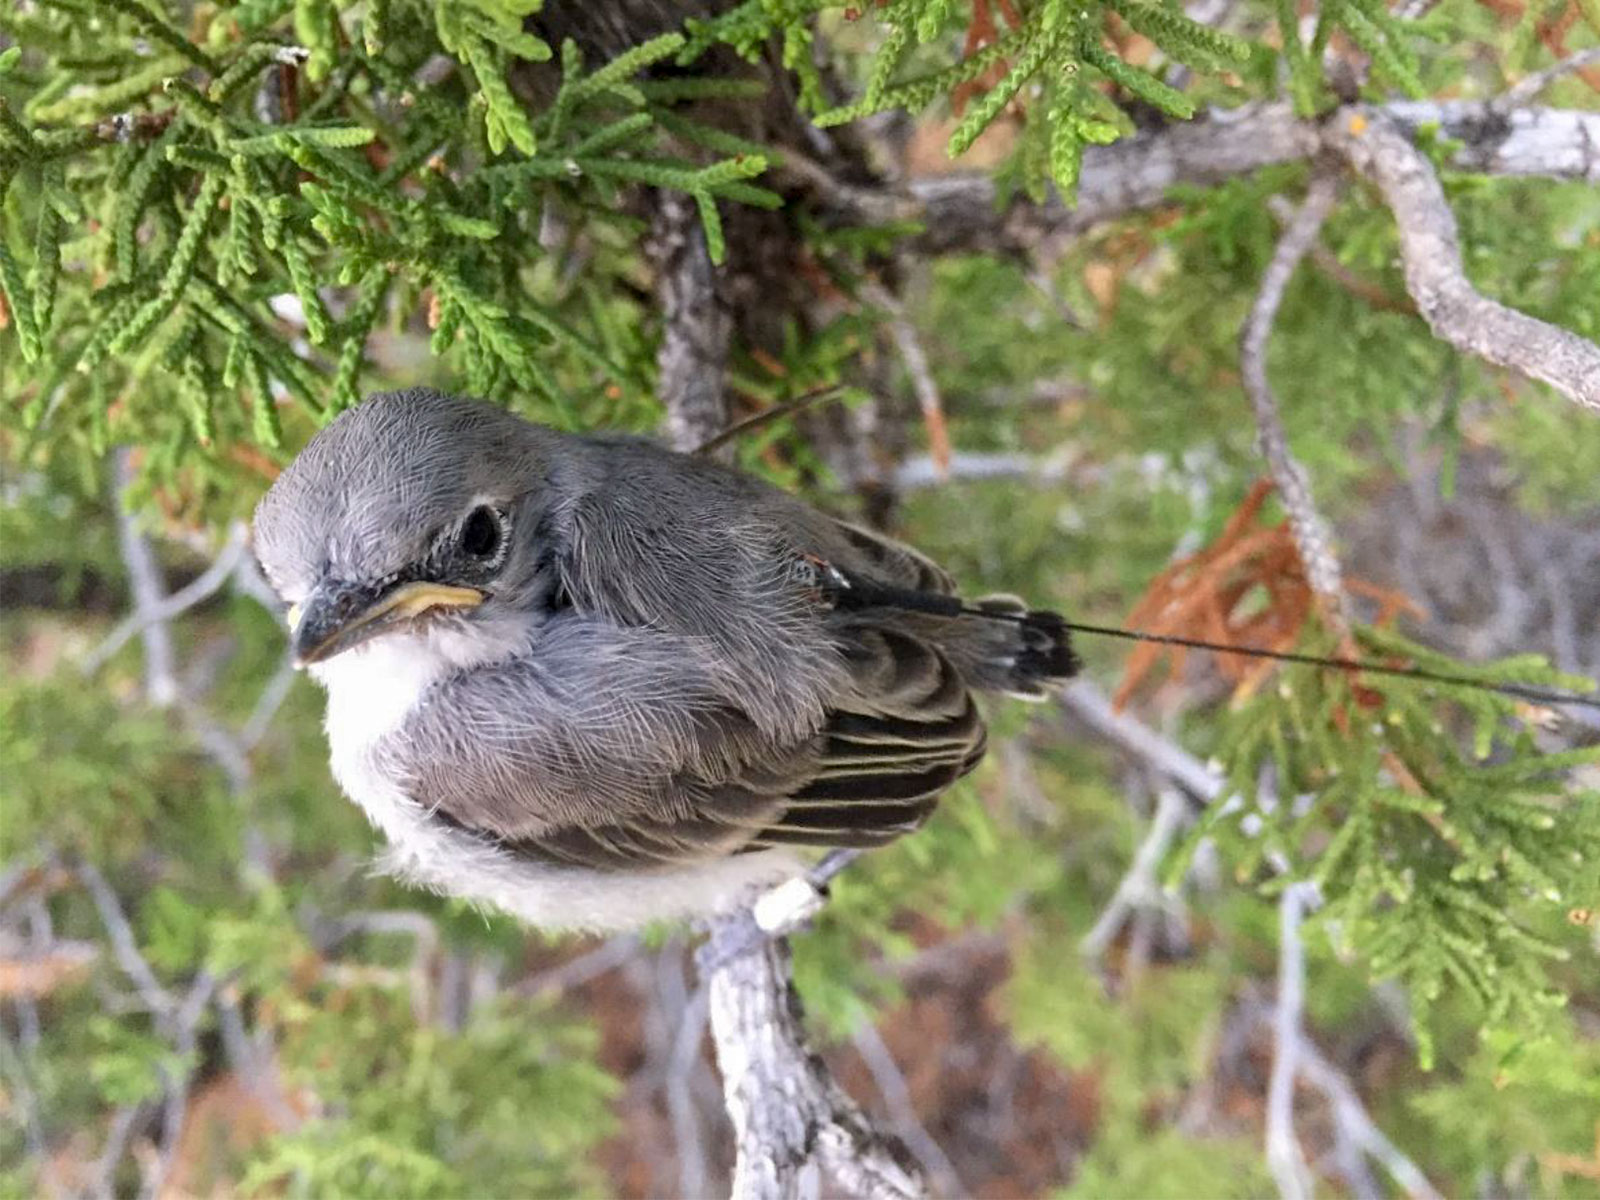 Gray Vireo fledgling wearing a radio transmitter. Silas Fischer